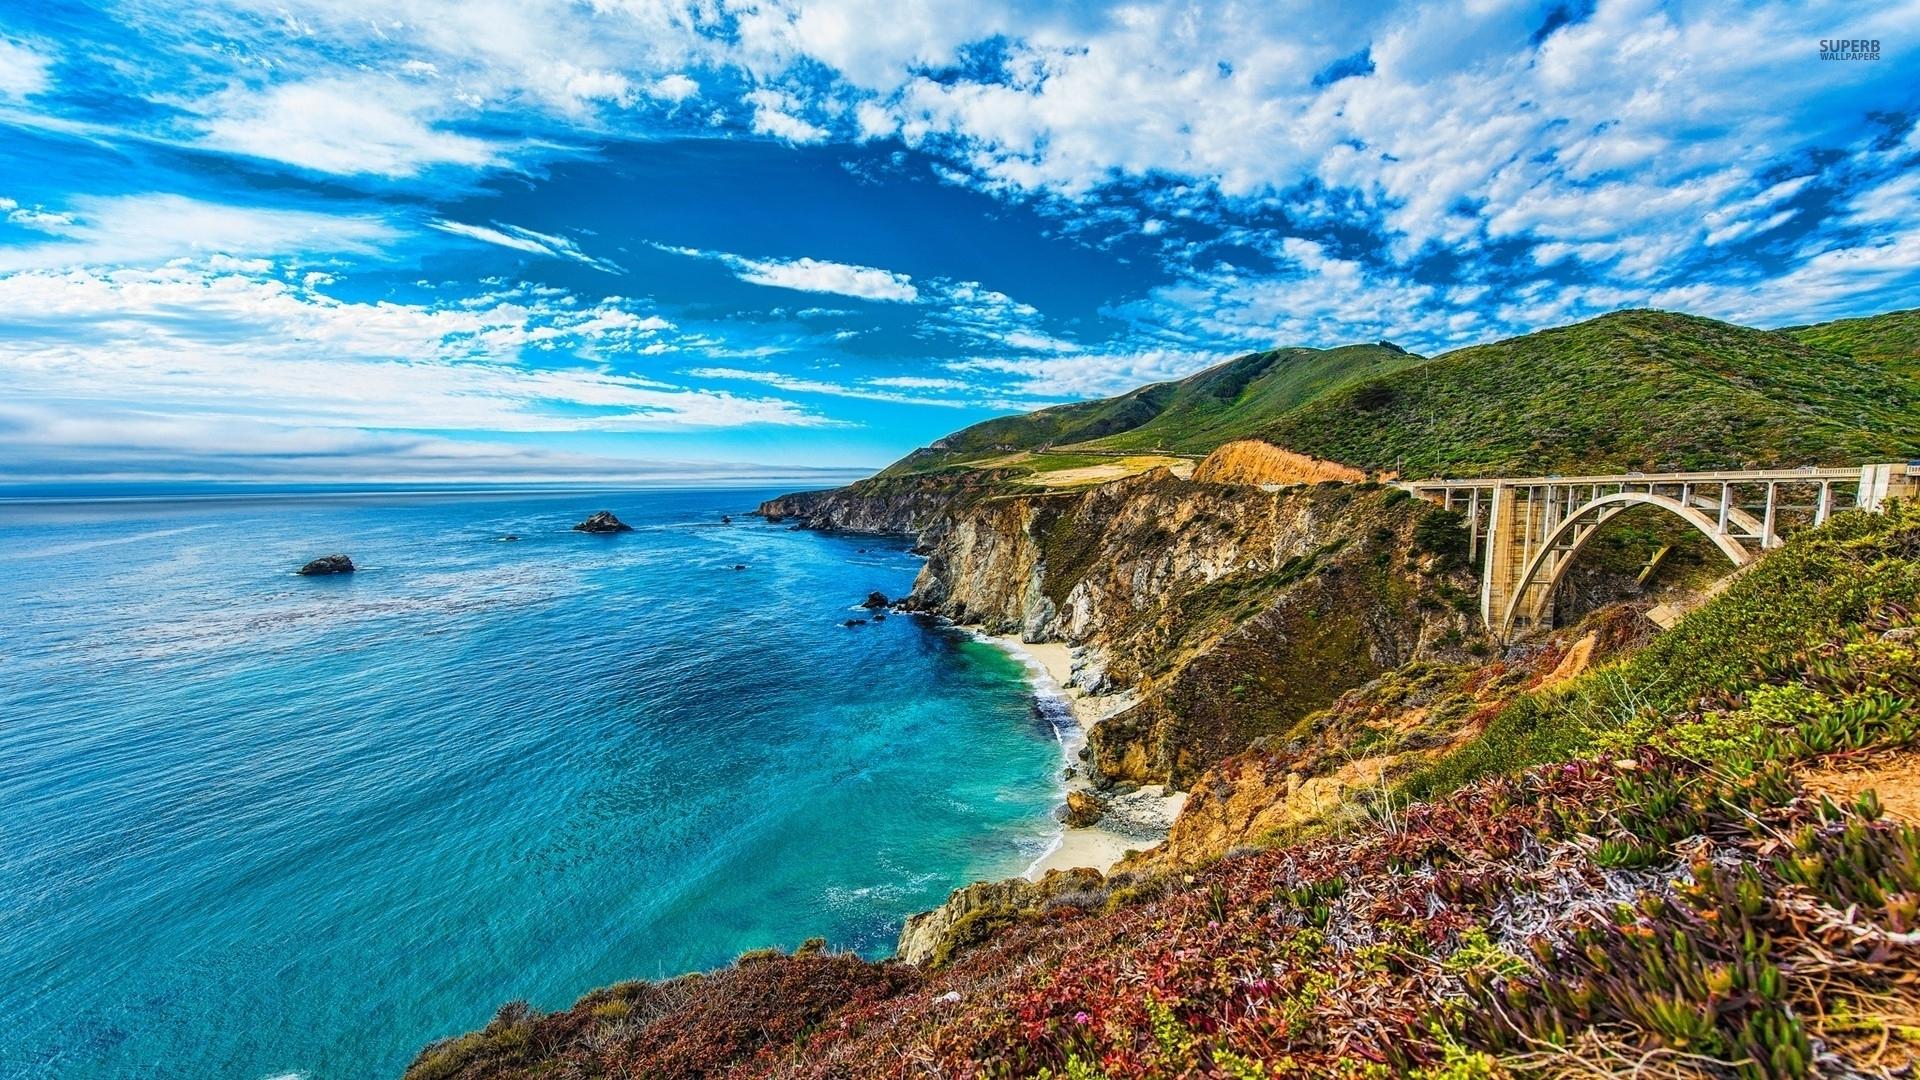 1920x1080 Bixby Creek Bridge Big Sur Desktop Pc And Mac Wallpaper